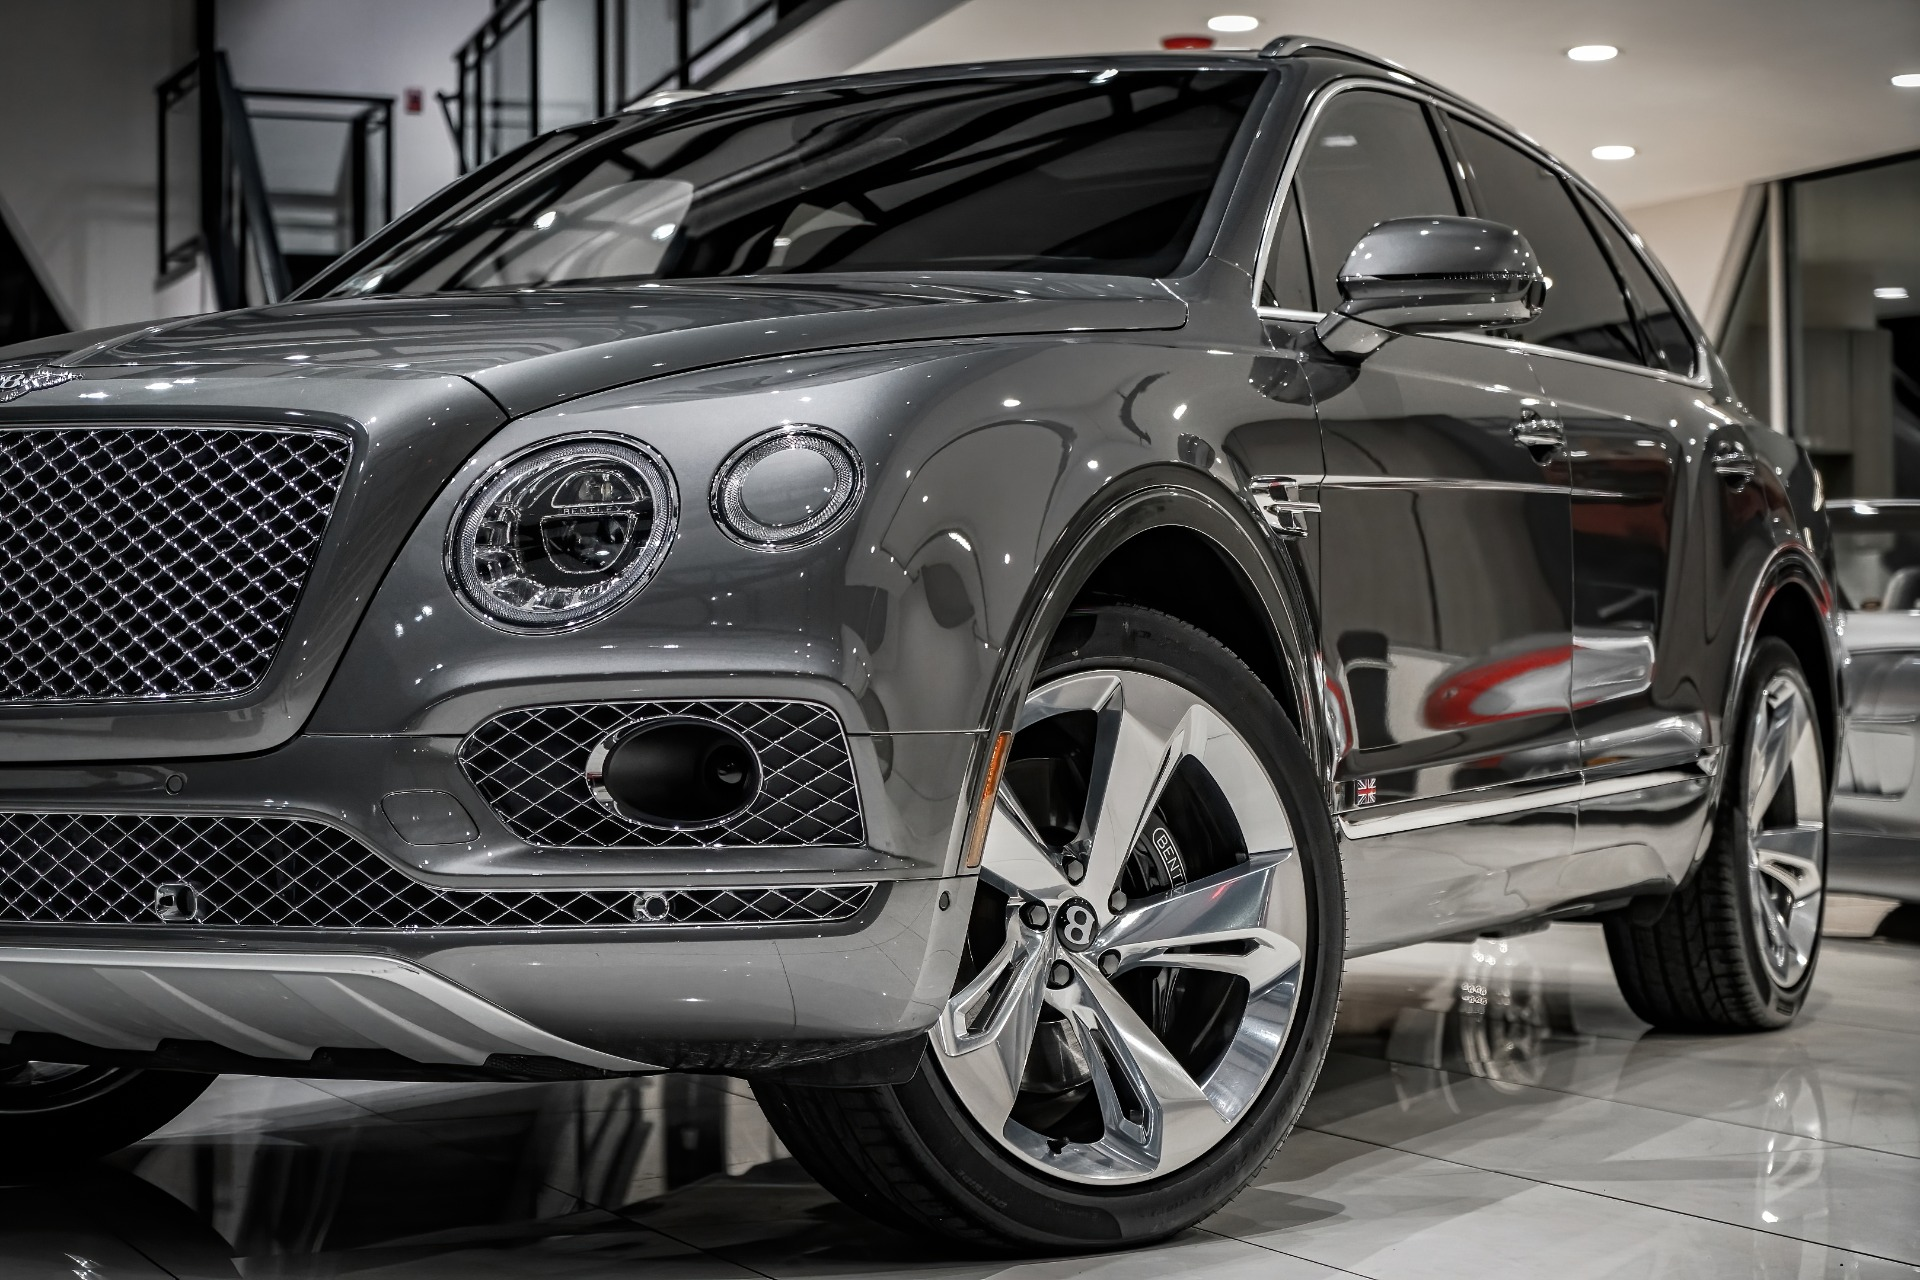 Used-2017-Bentley-Bentayga-W12-22-INCH-POLISHED-5-SPOKE-WHEELS-TOURING-SPECIFICATION-PICNIC-TABLES